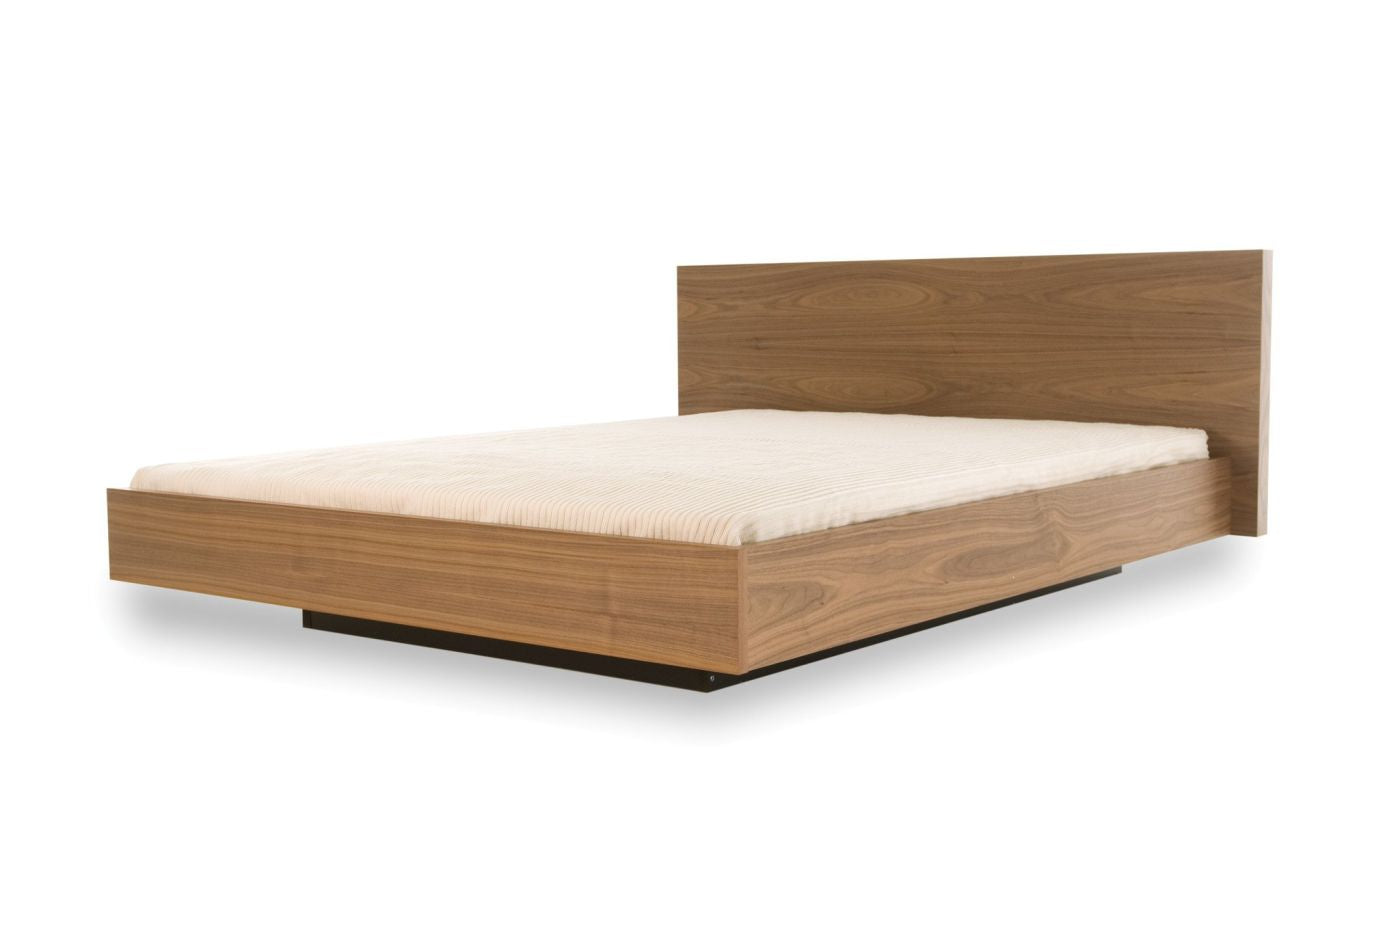 Float Bed King Size W Mattress Support Walnut Upholstered